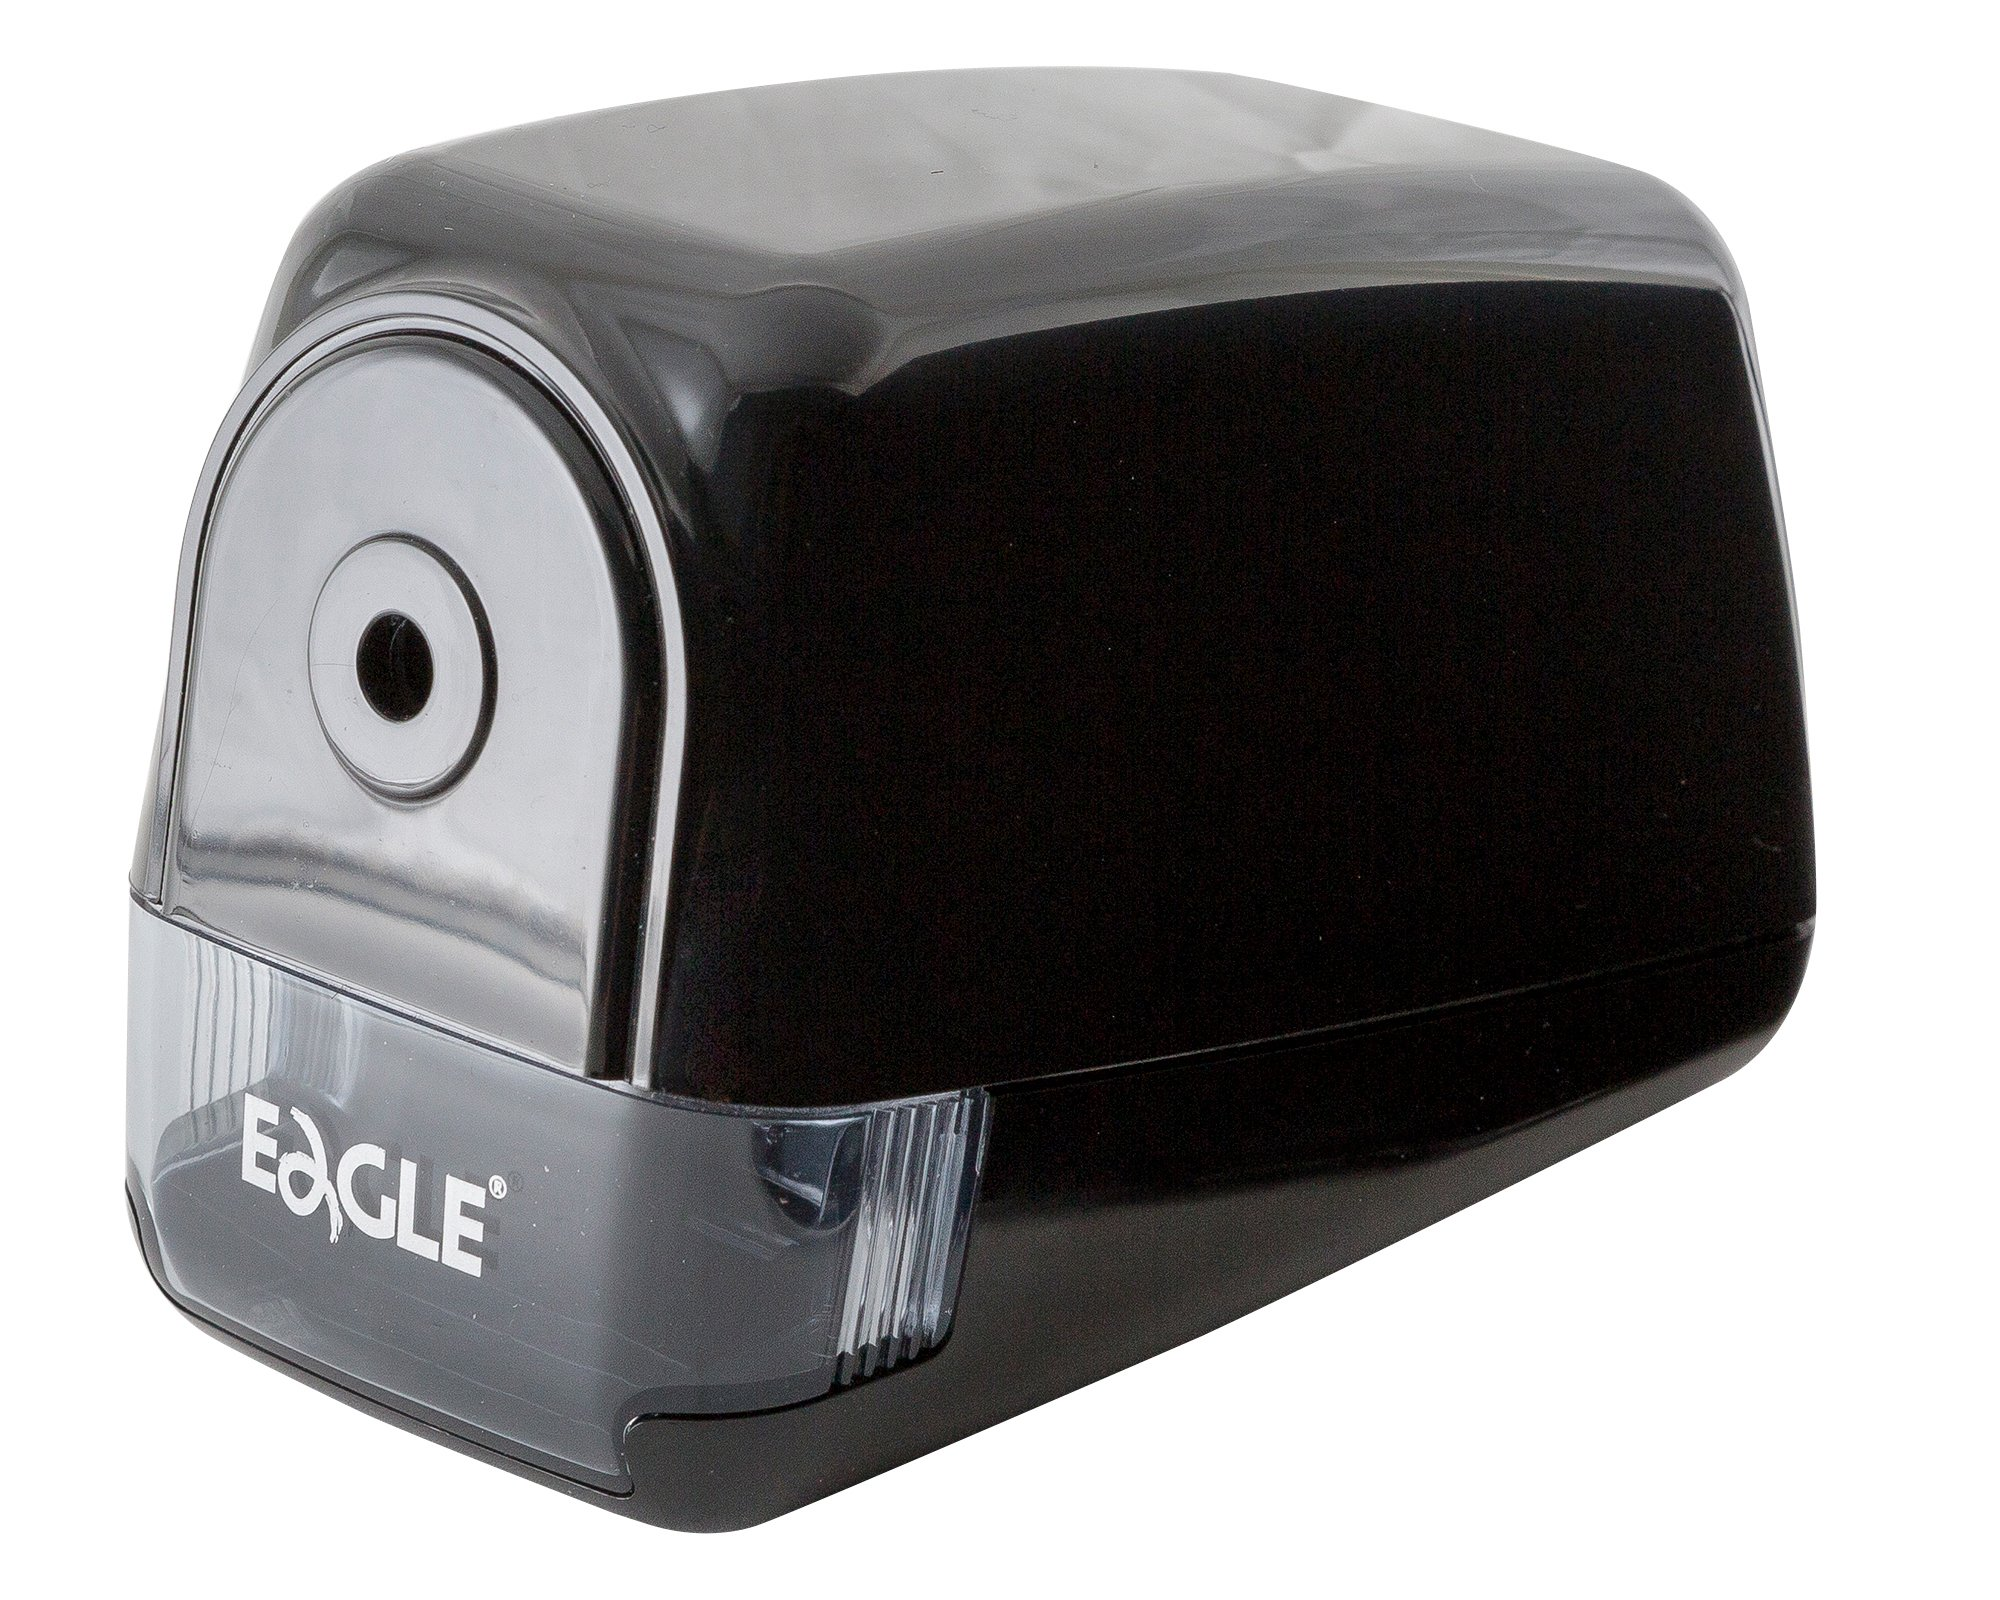 Eagle Electric Pencil Sharpener - Heavy Duty Helical Blade- Medium Use Motor with Overheat Protection - Perfect for Regular Pencils - Best for School, Home, and Office Use